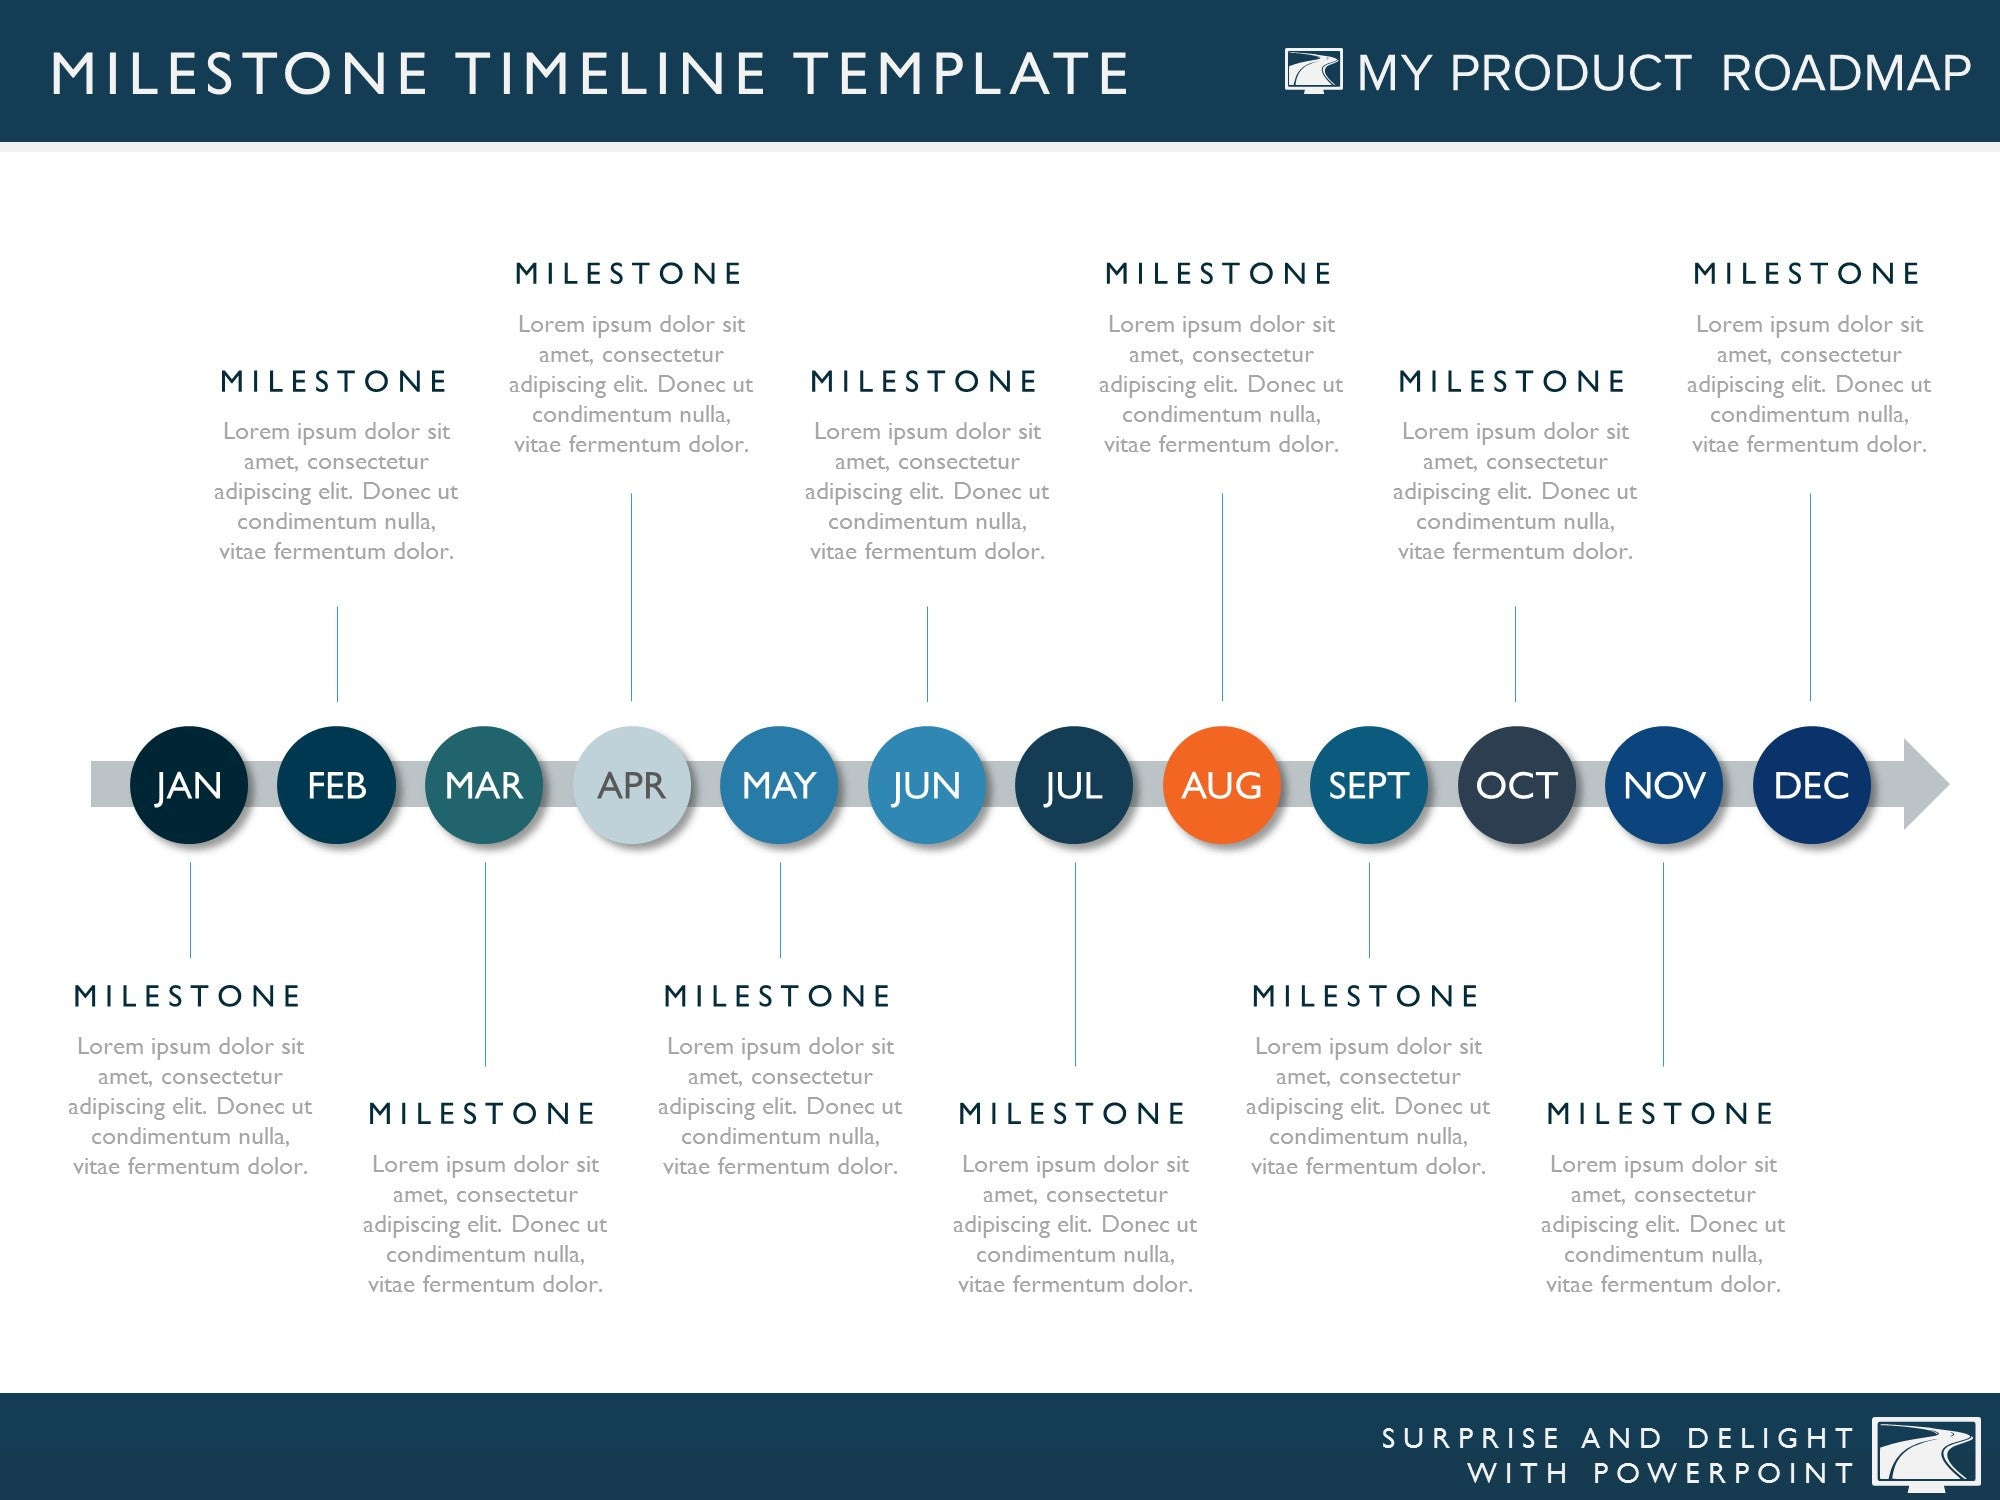 Twelve phase product development timeline roadmap presentation product strategy development cycle plan portfolio management software agile planning how to create a roadmap example toneelgroepblik